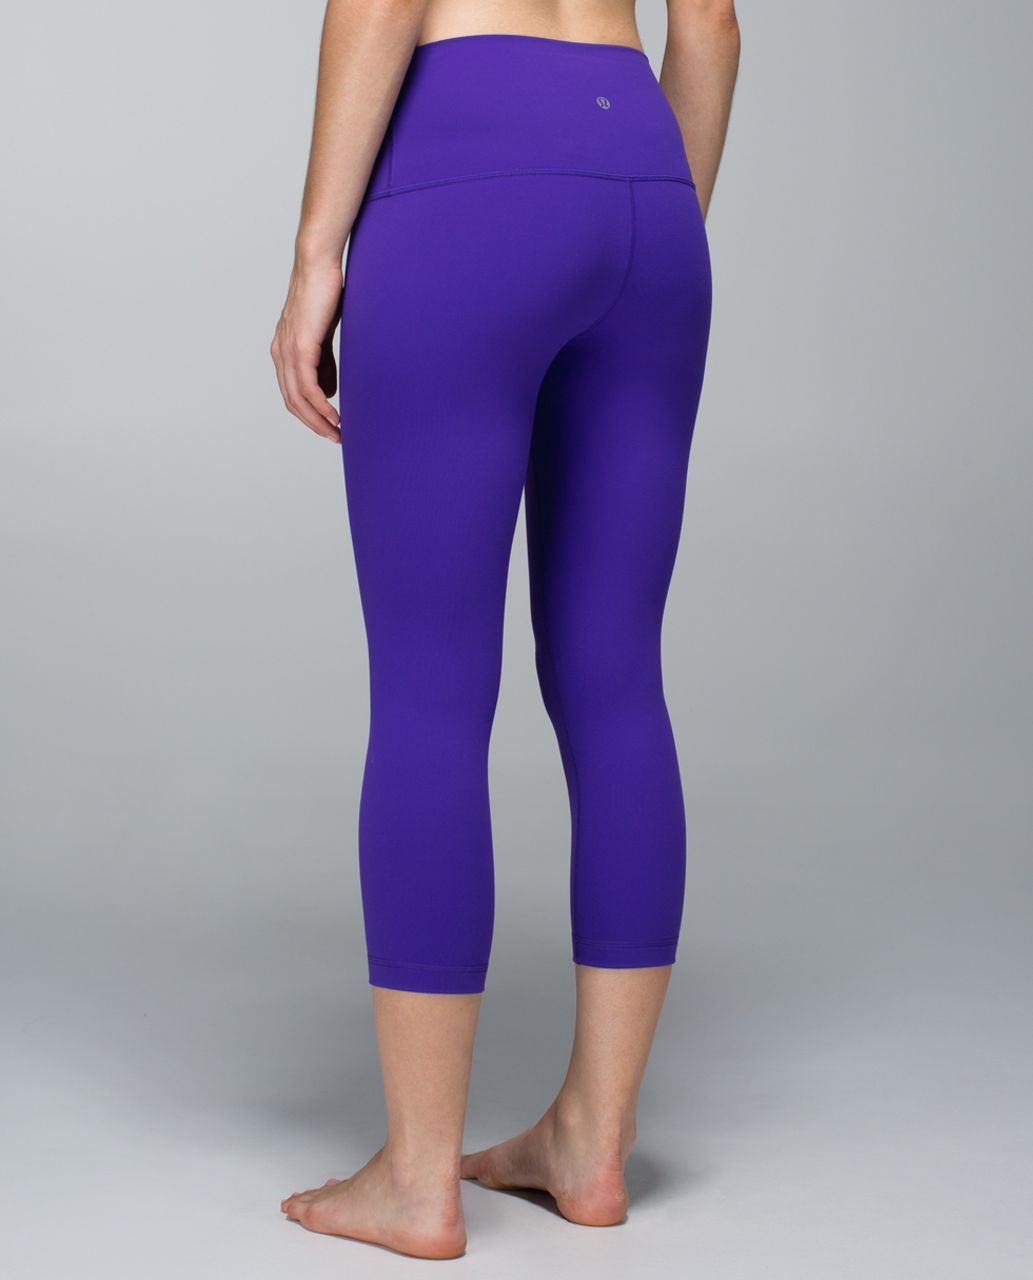 Lululemon Wunder Under Crop *Full-On Luon (Roll Down) - Bruised Berry